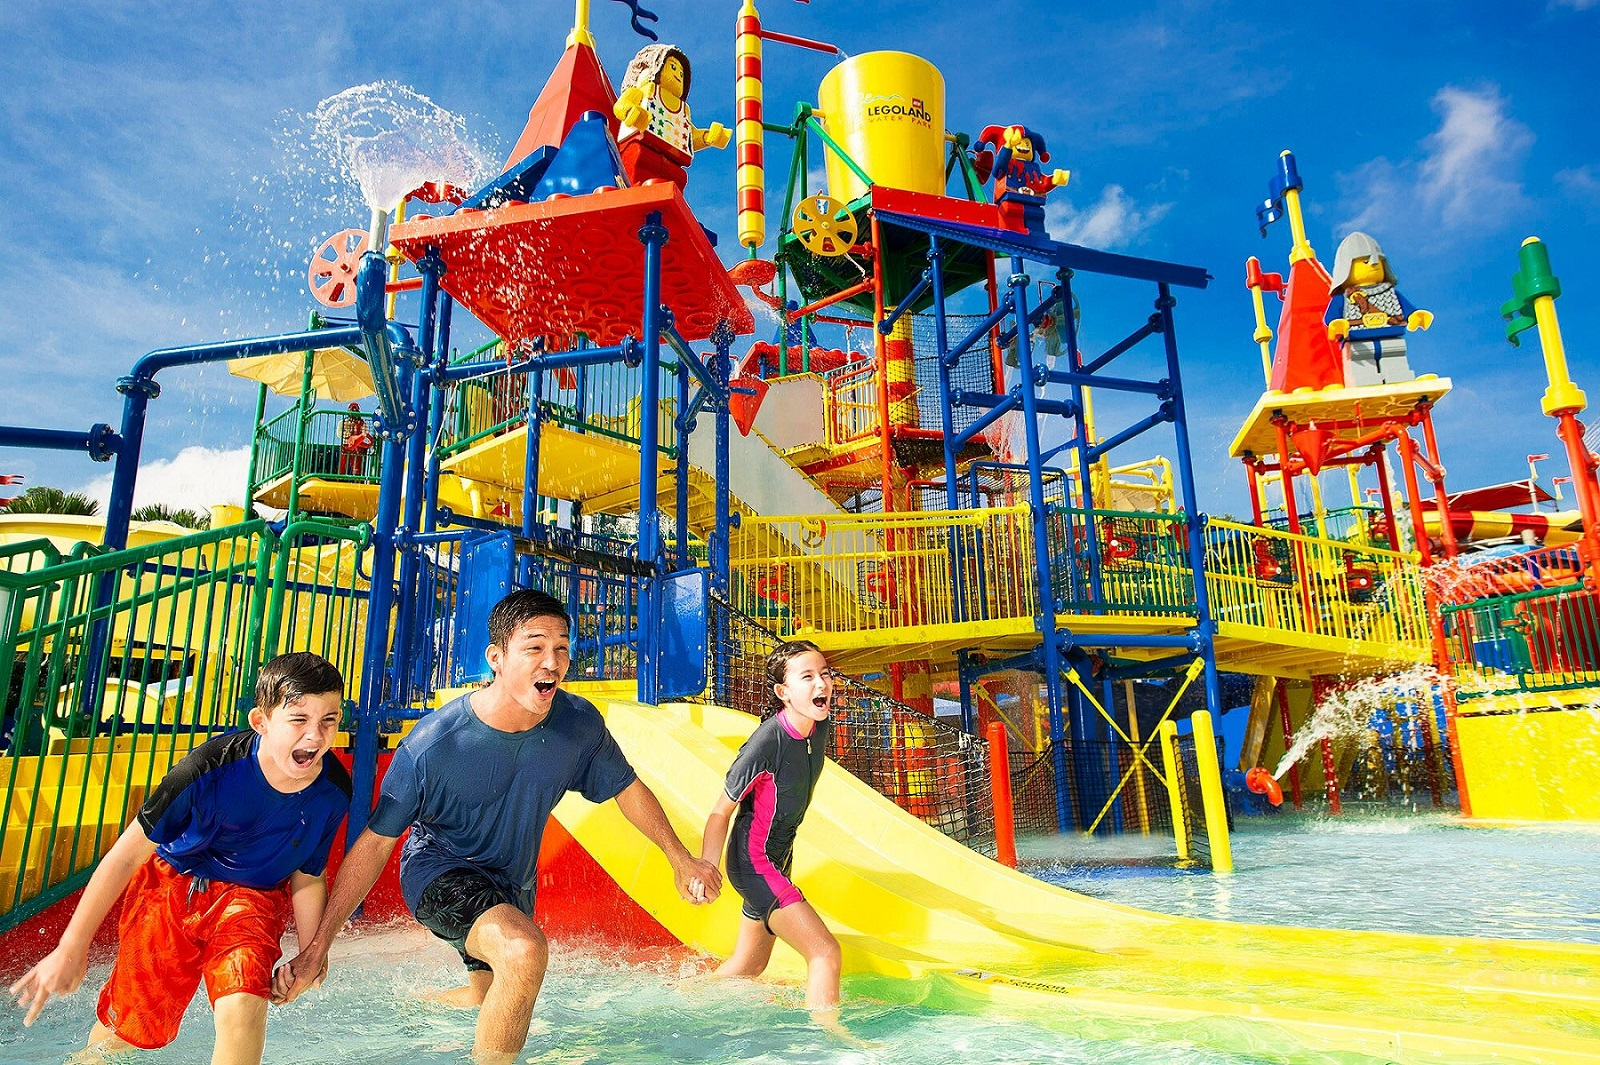 [REVISED] Legoland M'sia Has A New Aquarium, VR Roller Coaster & Pirate-Themed Rooms For School Break Staycays water park